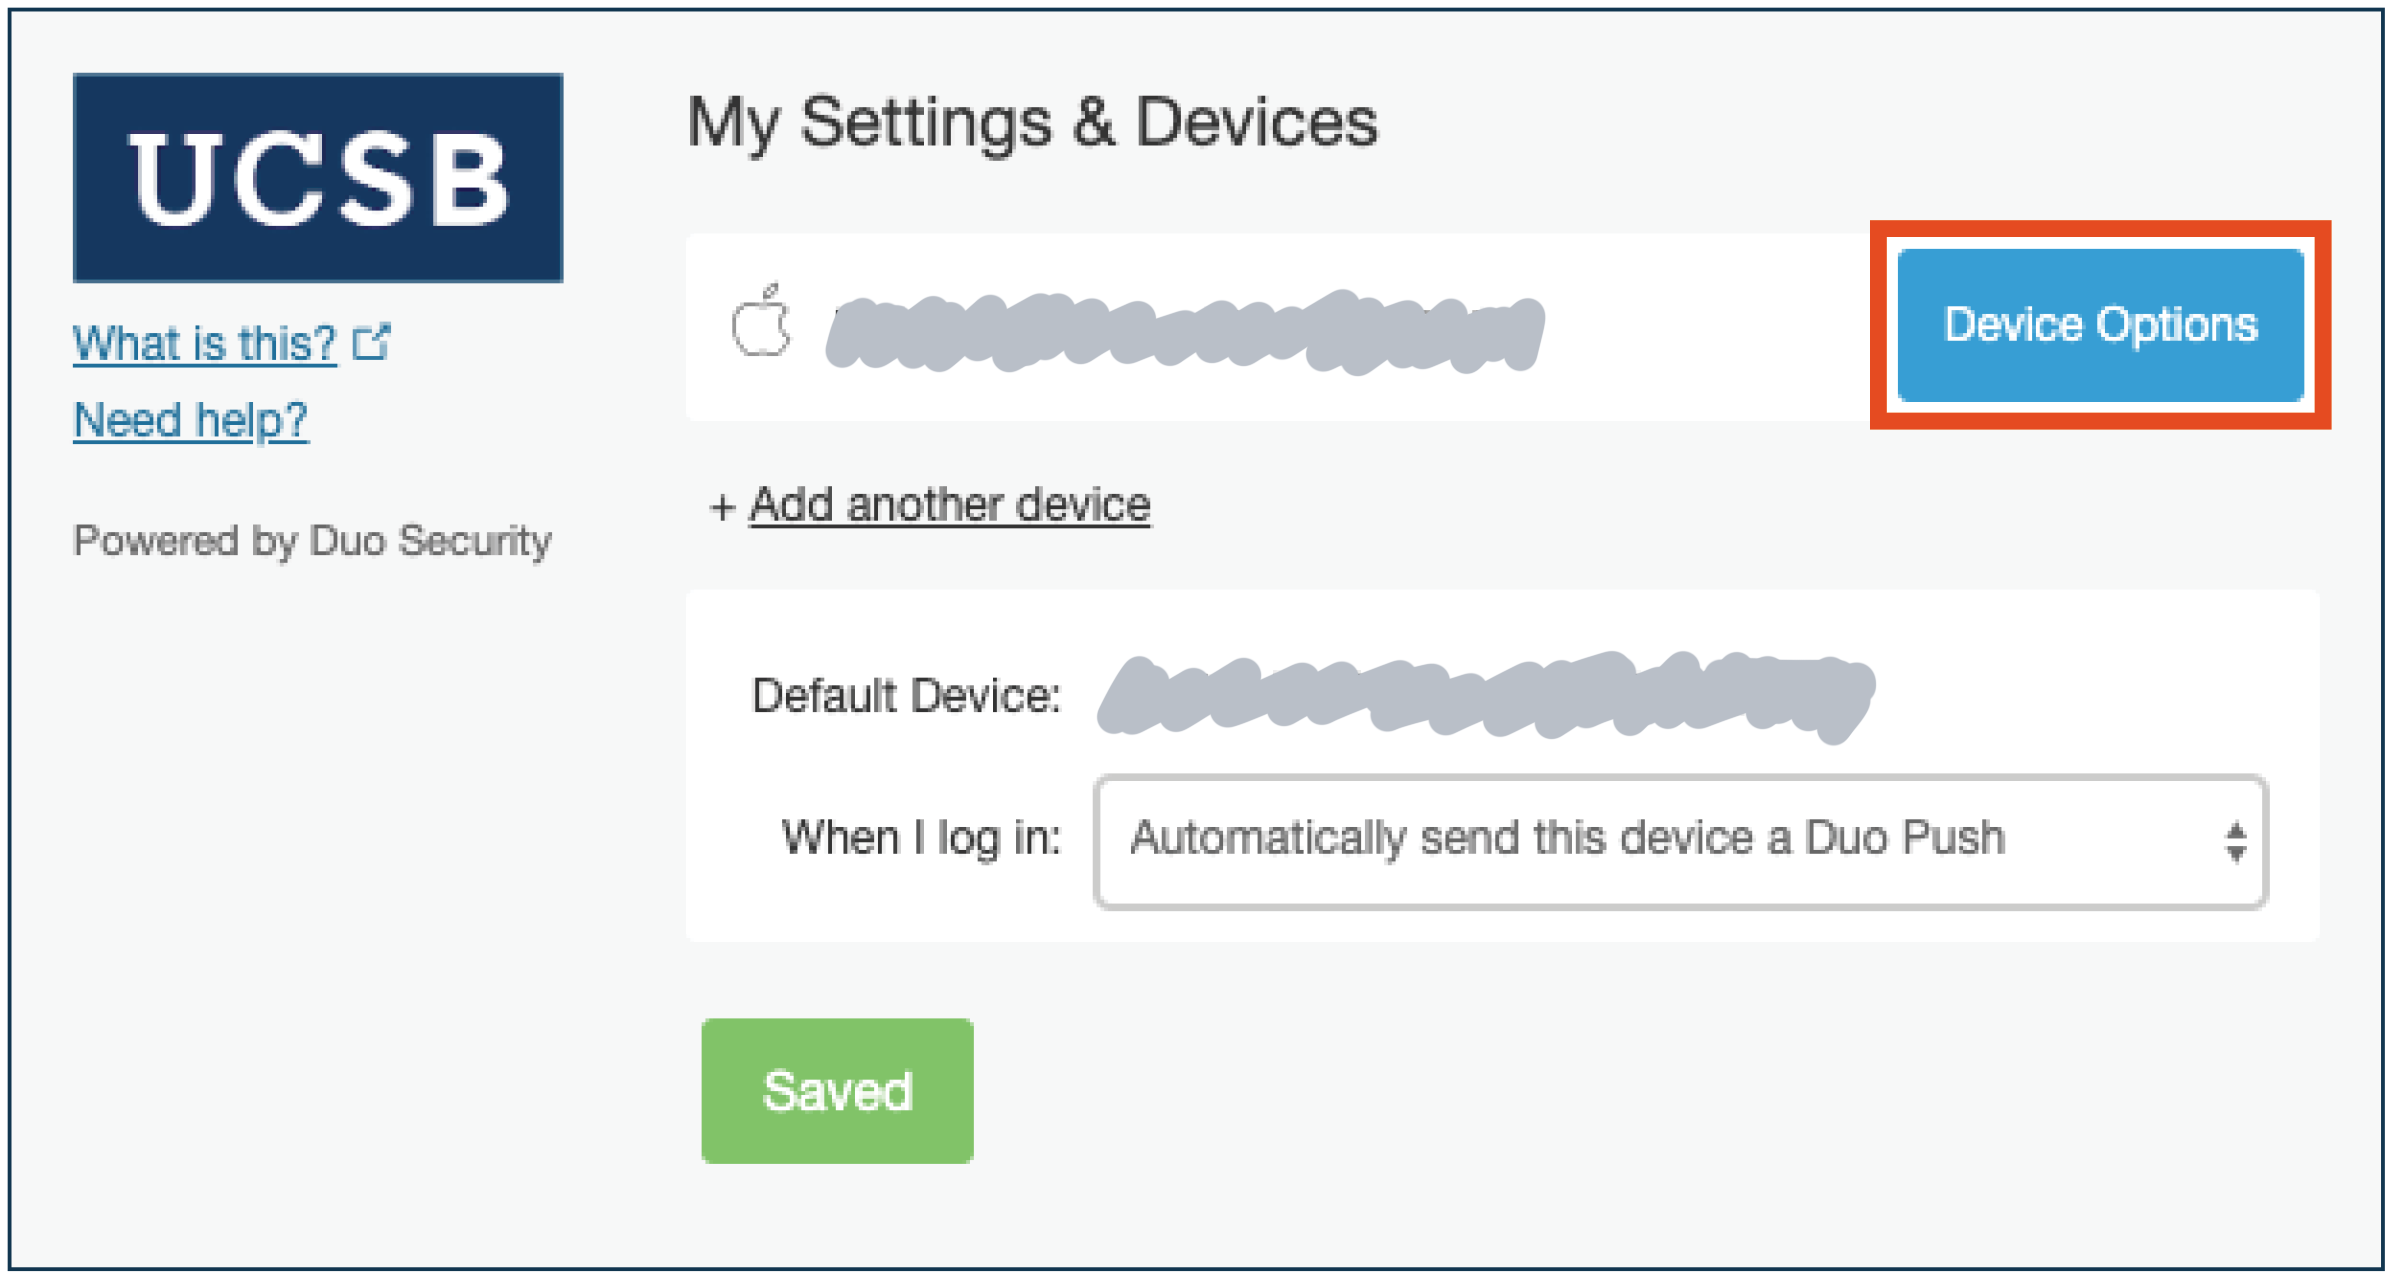 Duo device options